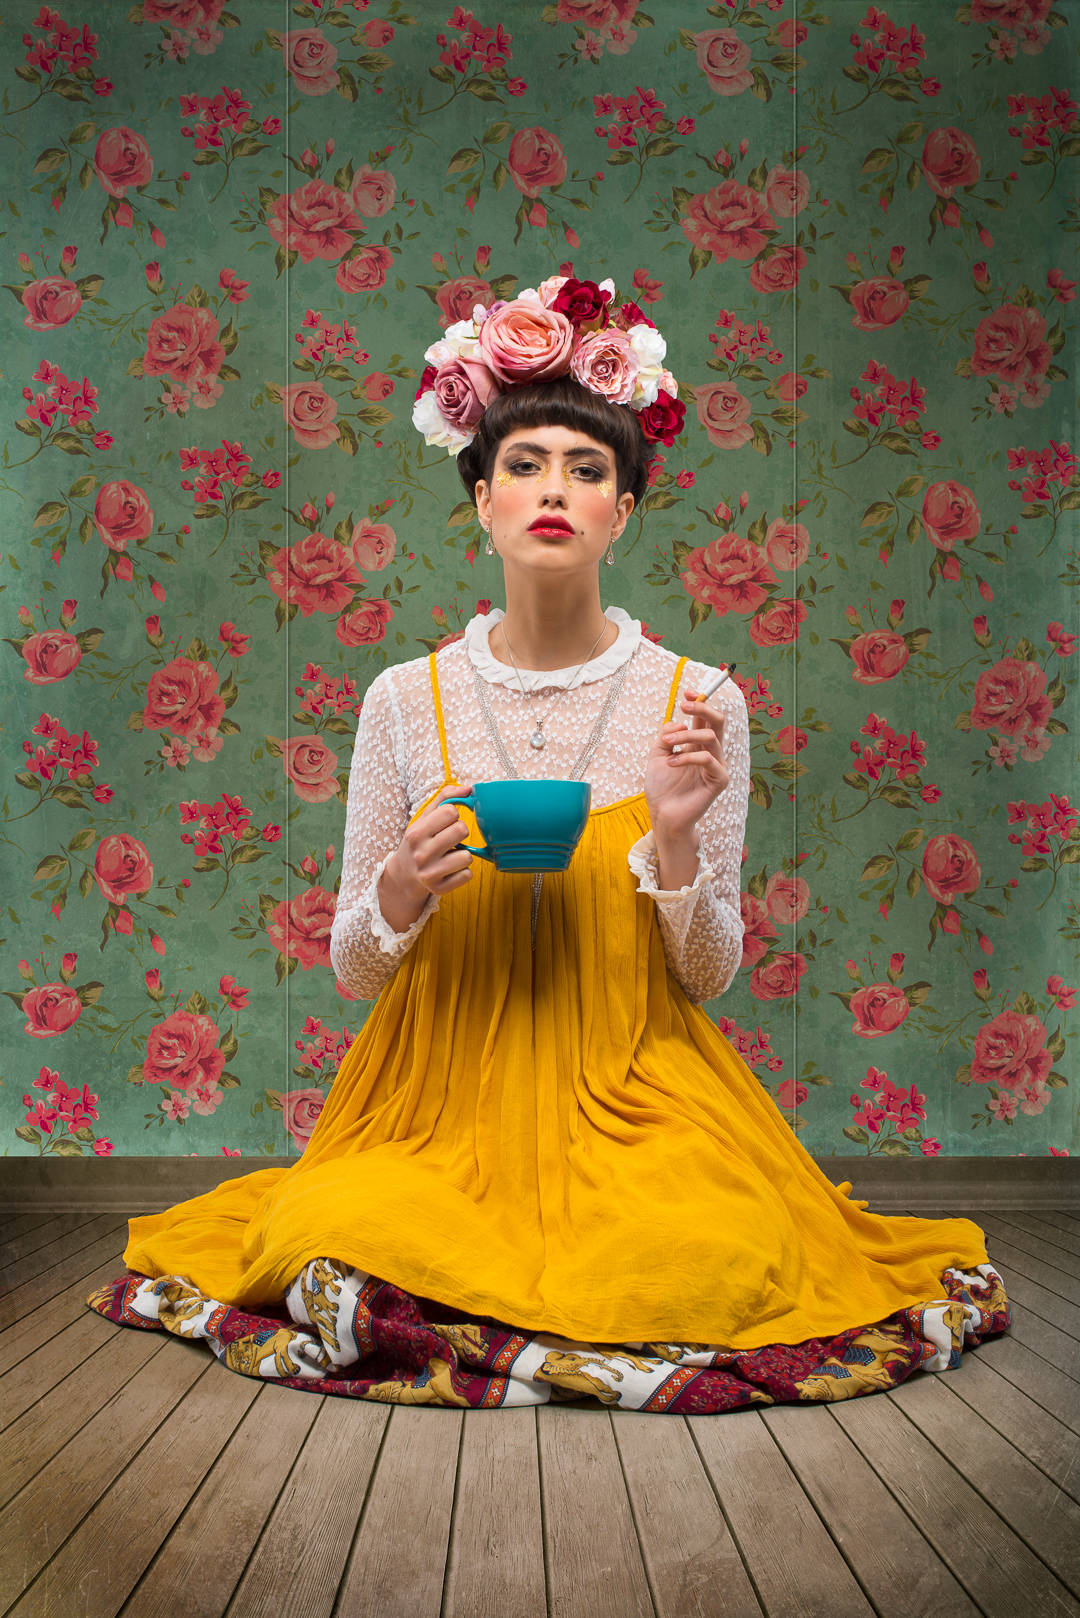 Vanessa as Frida Kahlo